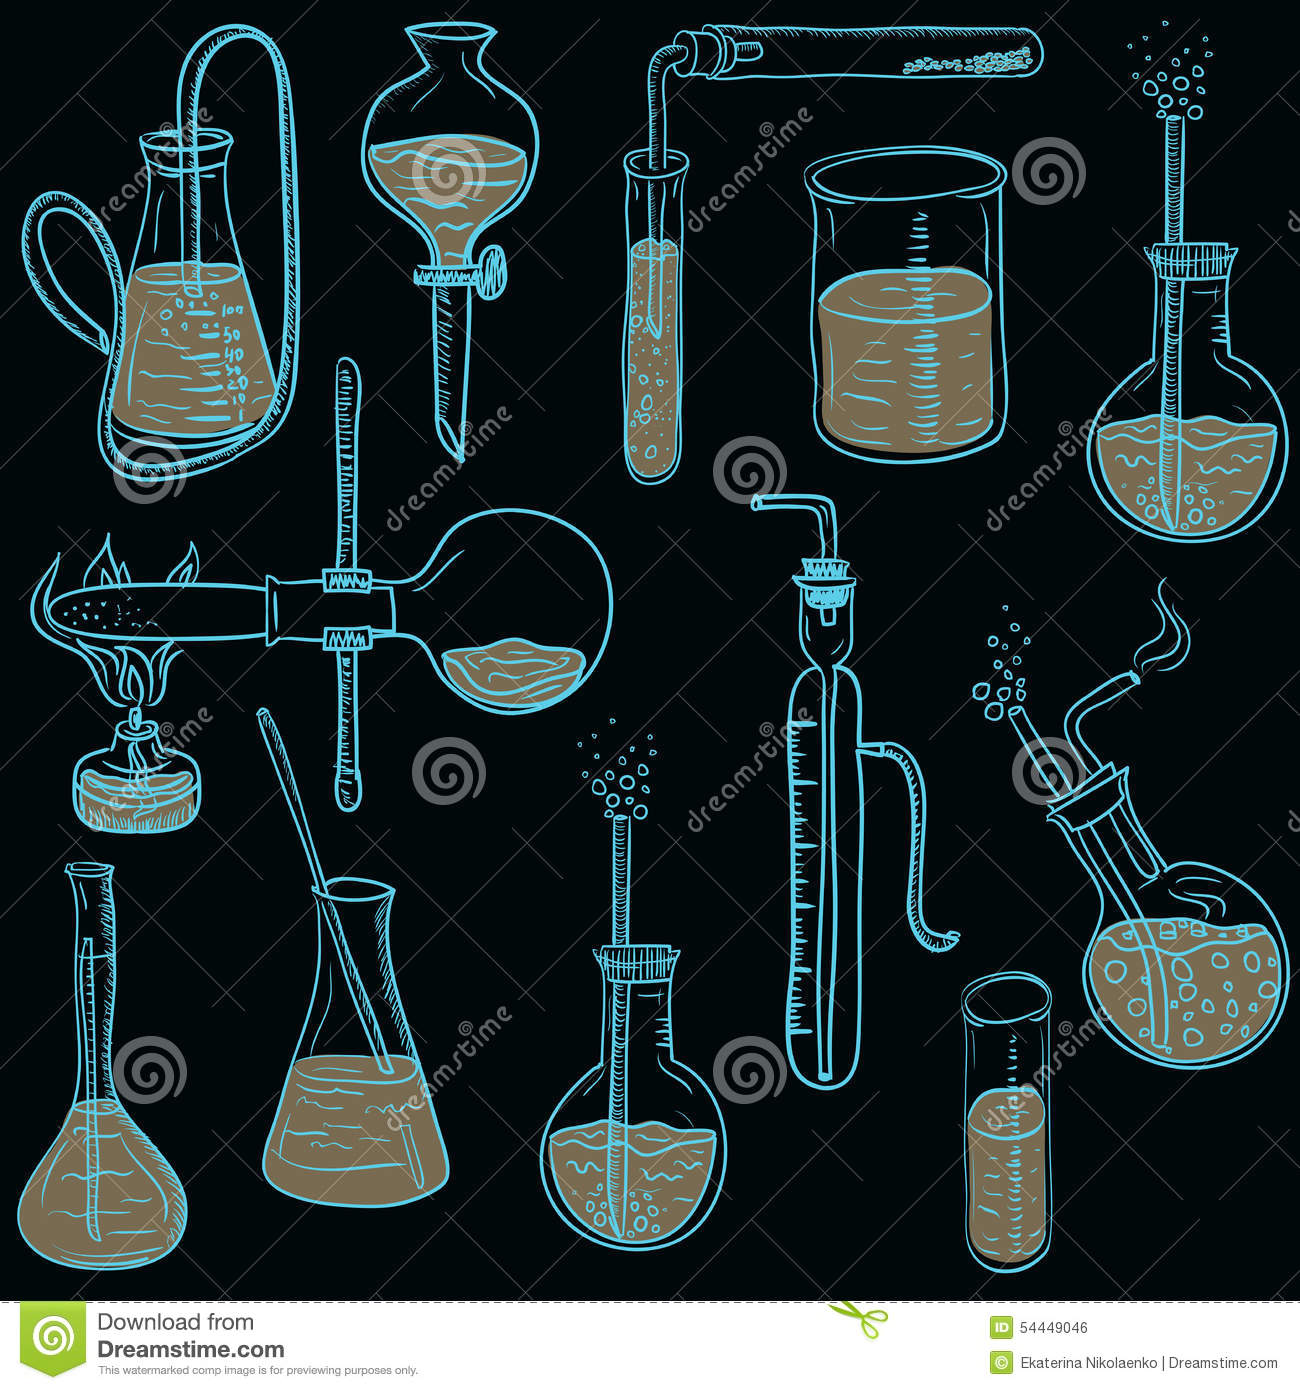 Science Laboratory Background Design: Science Chemistry Laboratory Vector Background Sketchy